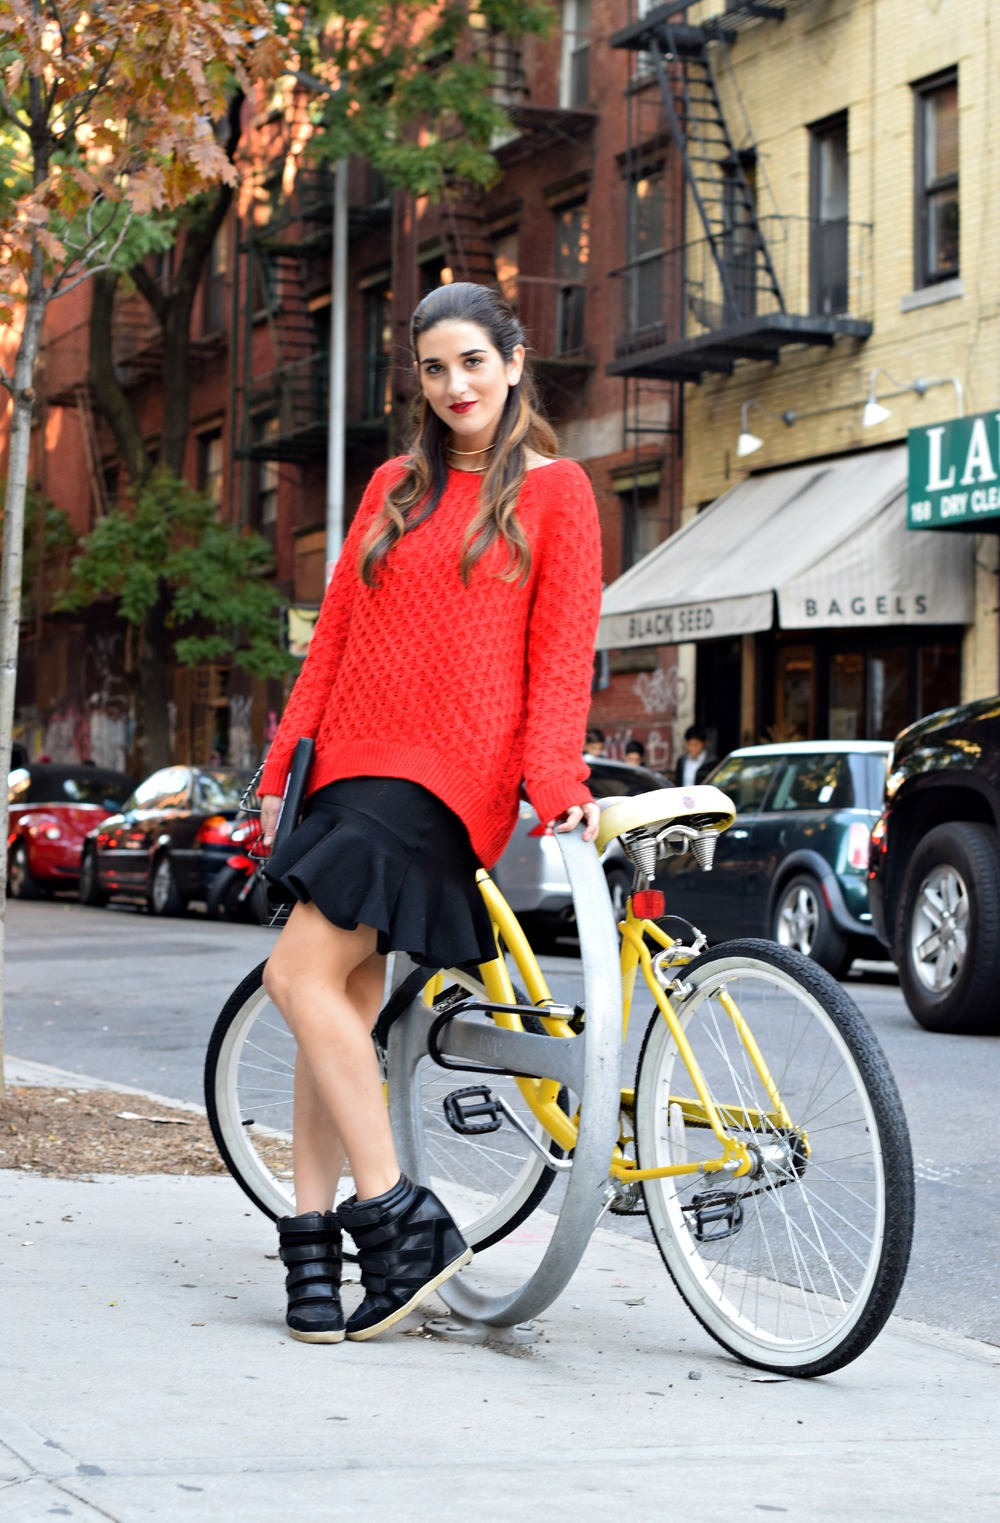 Red Sweater Black Ruffled Skirt Wow Couture Louboutins & Love Fashion Blog Esther Santer NYC Street Style Blogger Outfit OOTD Gold Collar Necklace Fall Winter Look Hair Inspo Inspiration How To Wear Chunky Knits Shop Girl Women Photoshoot Soho Wearing.jpg